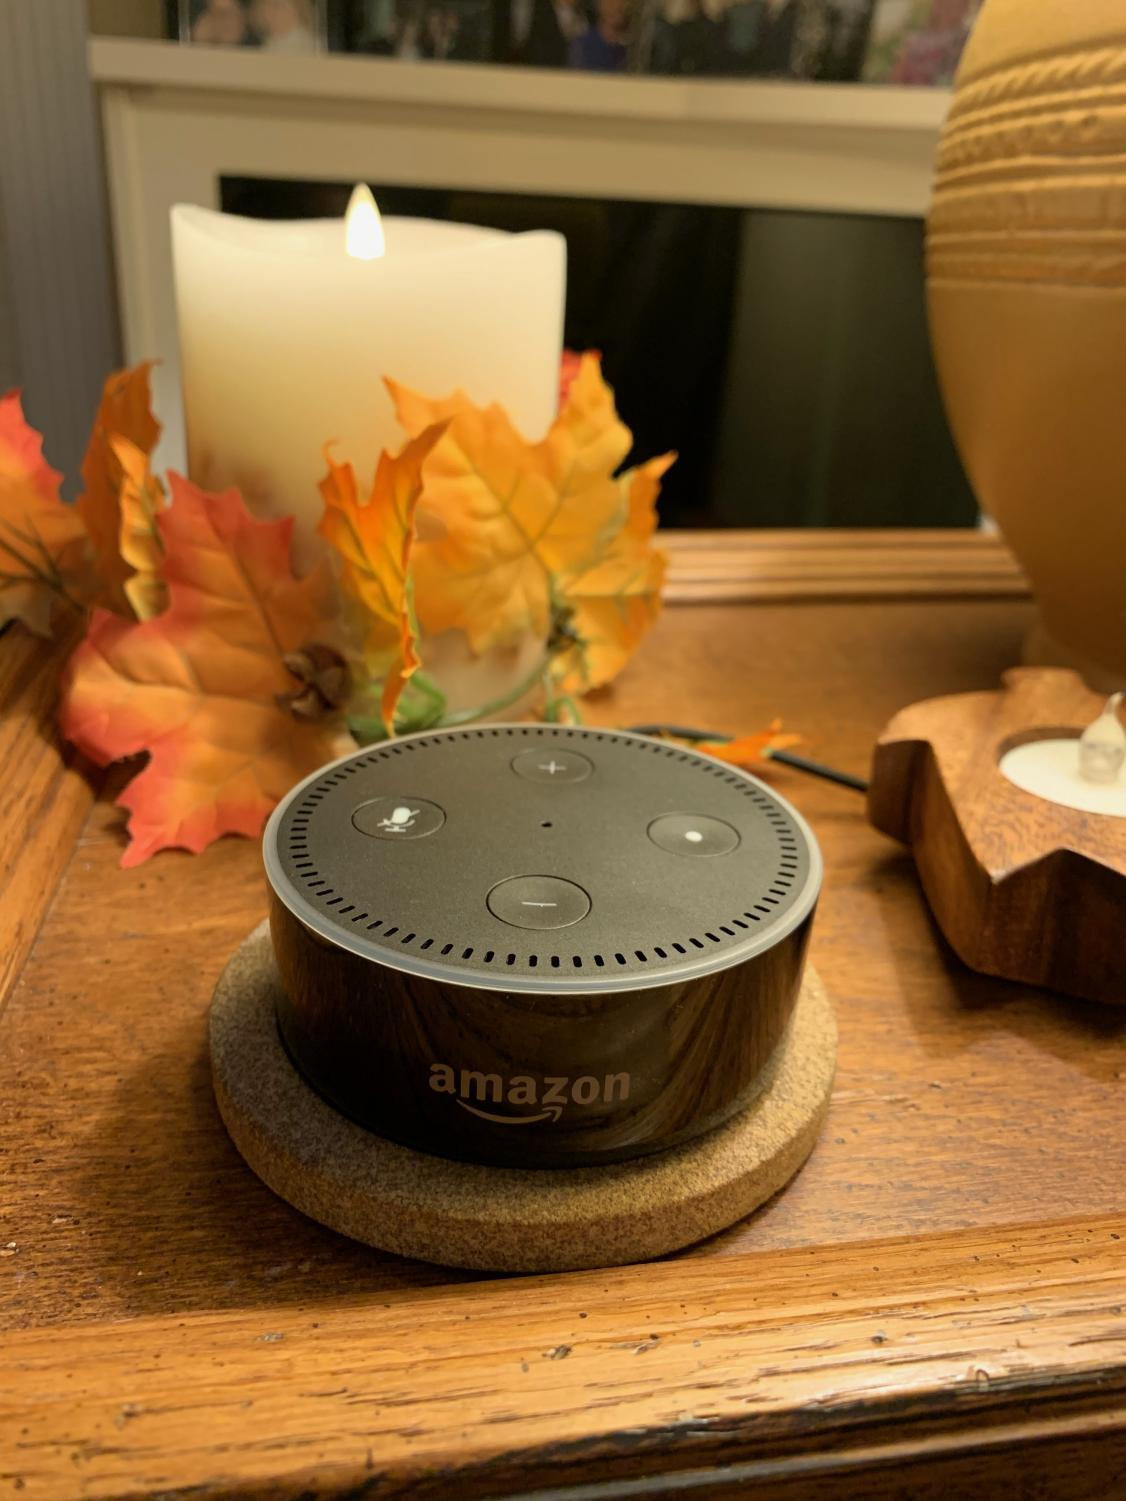 The Amazon Alexa speaker.